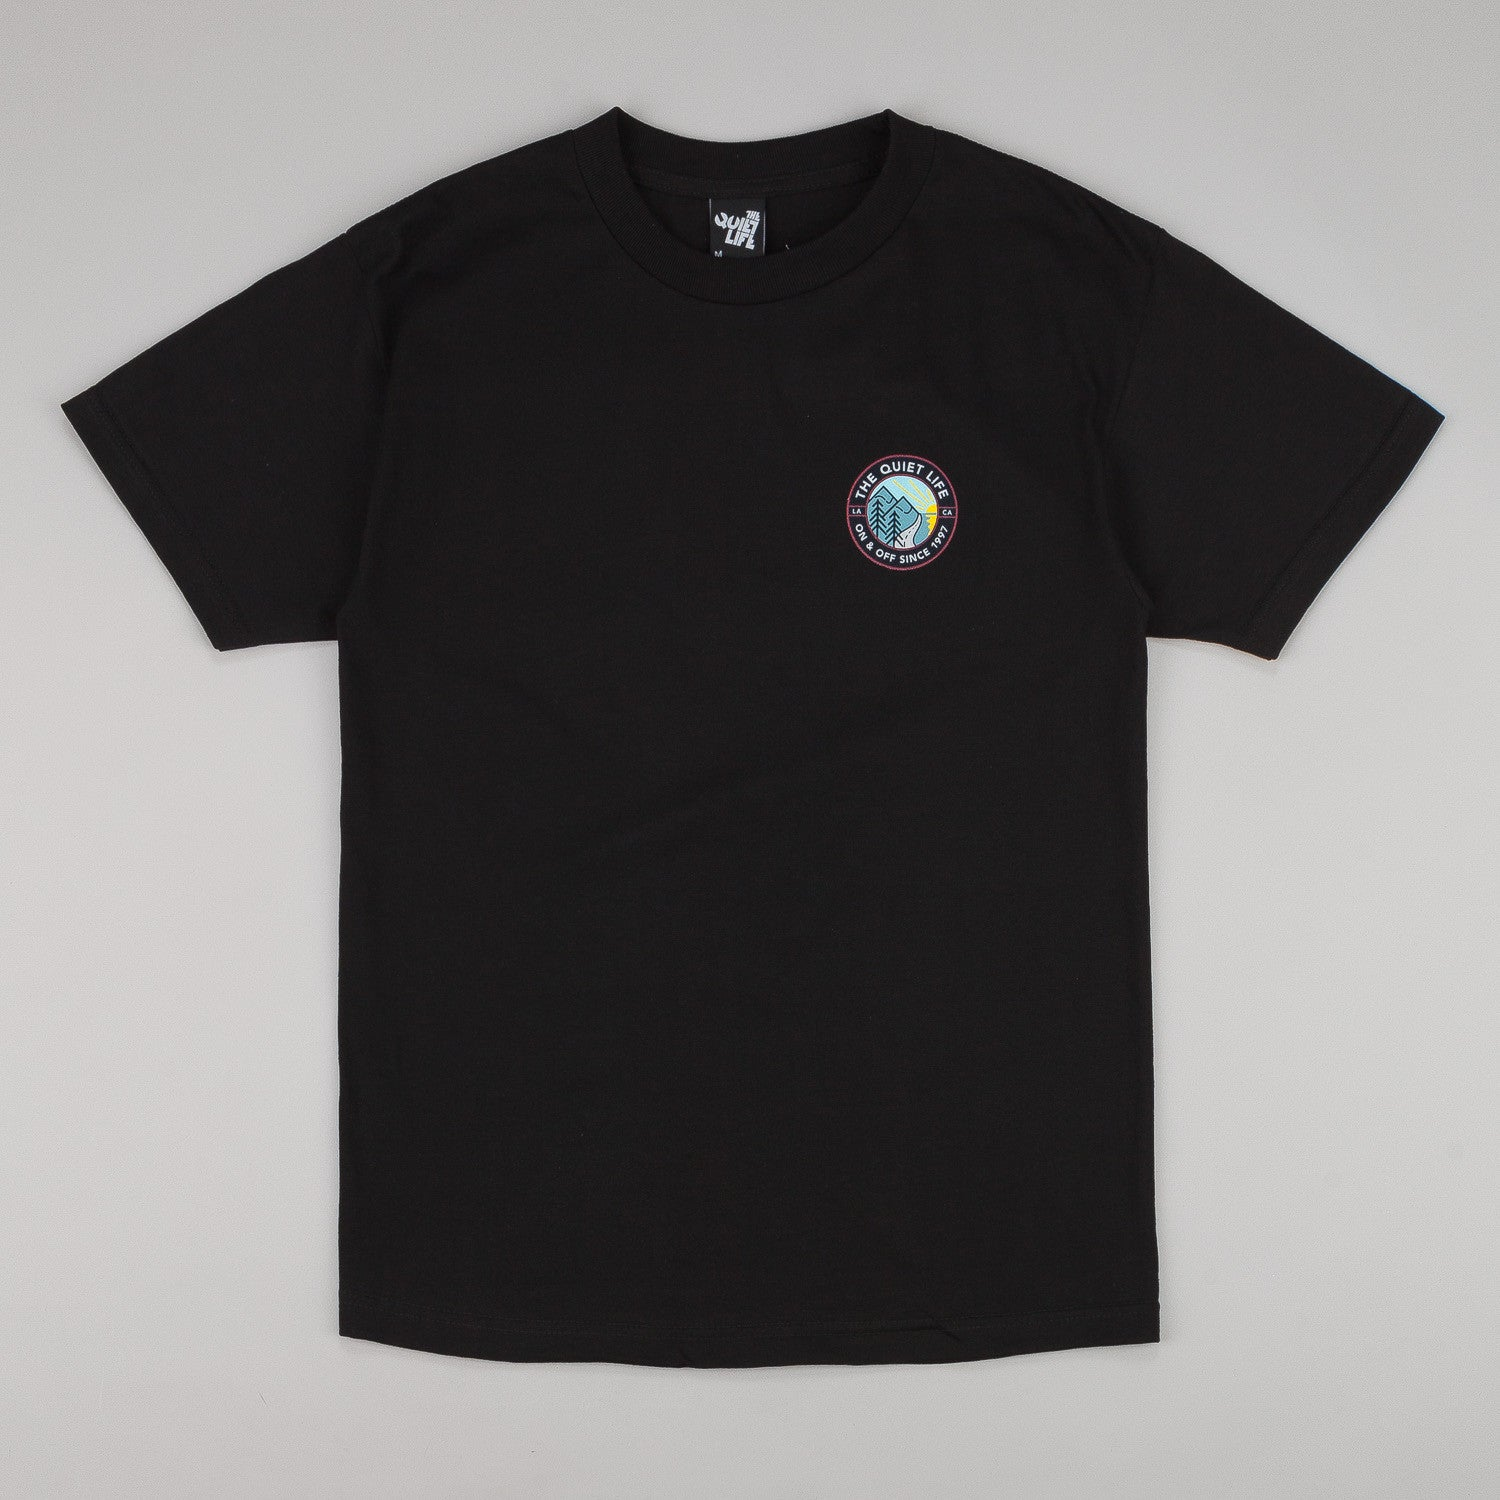 The Quiet Life Explorer T-Shirt